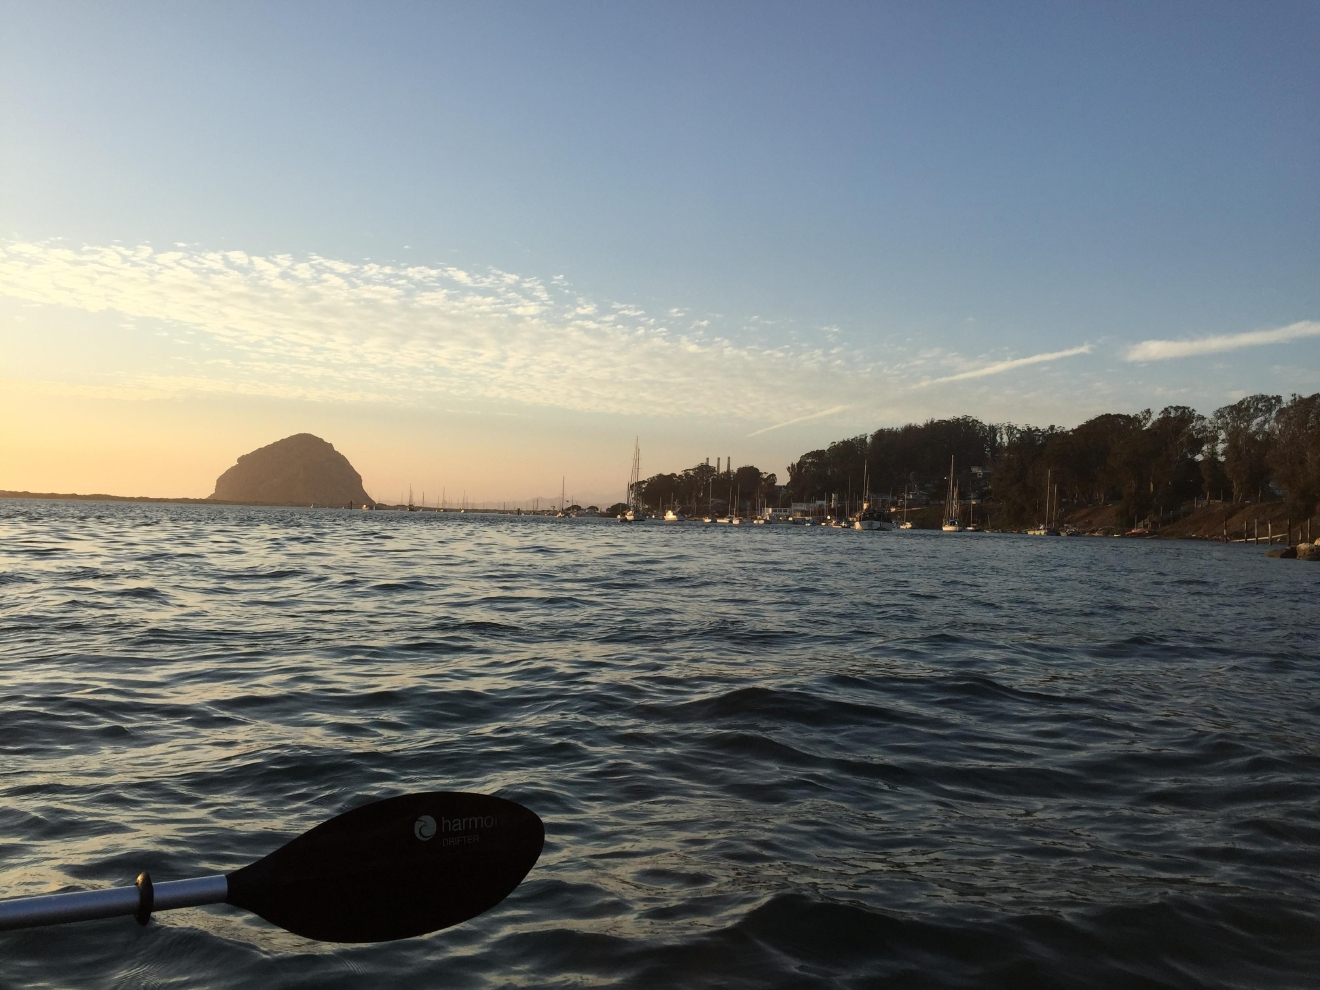 Central Coast Outdoors' sunset kayak paddle is a wonderfully unique way to experience Morro Bay.